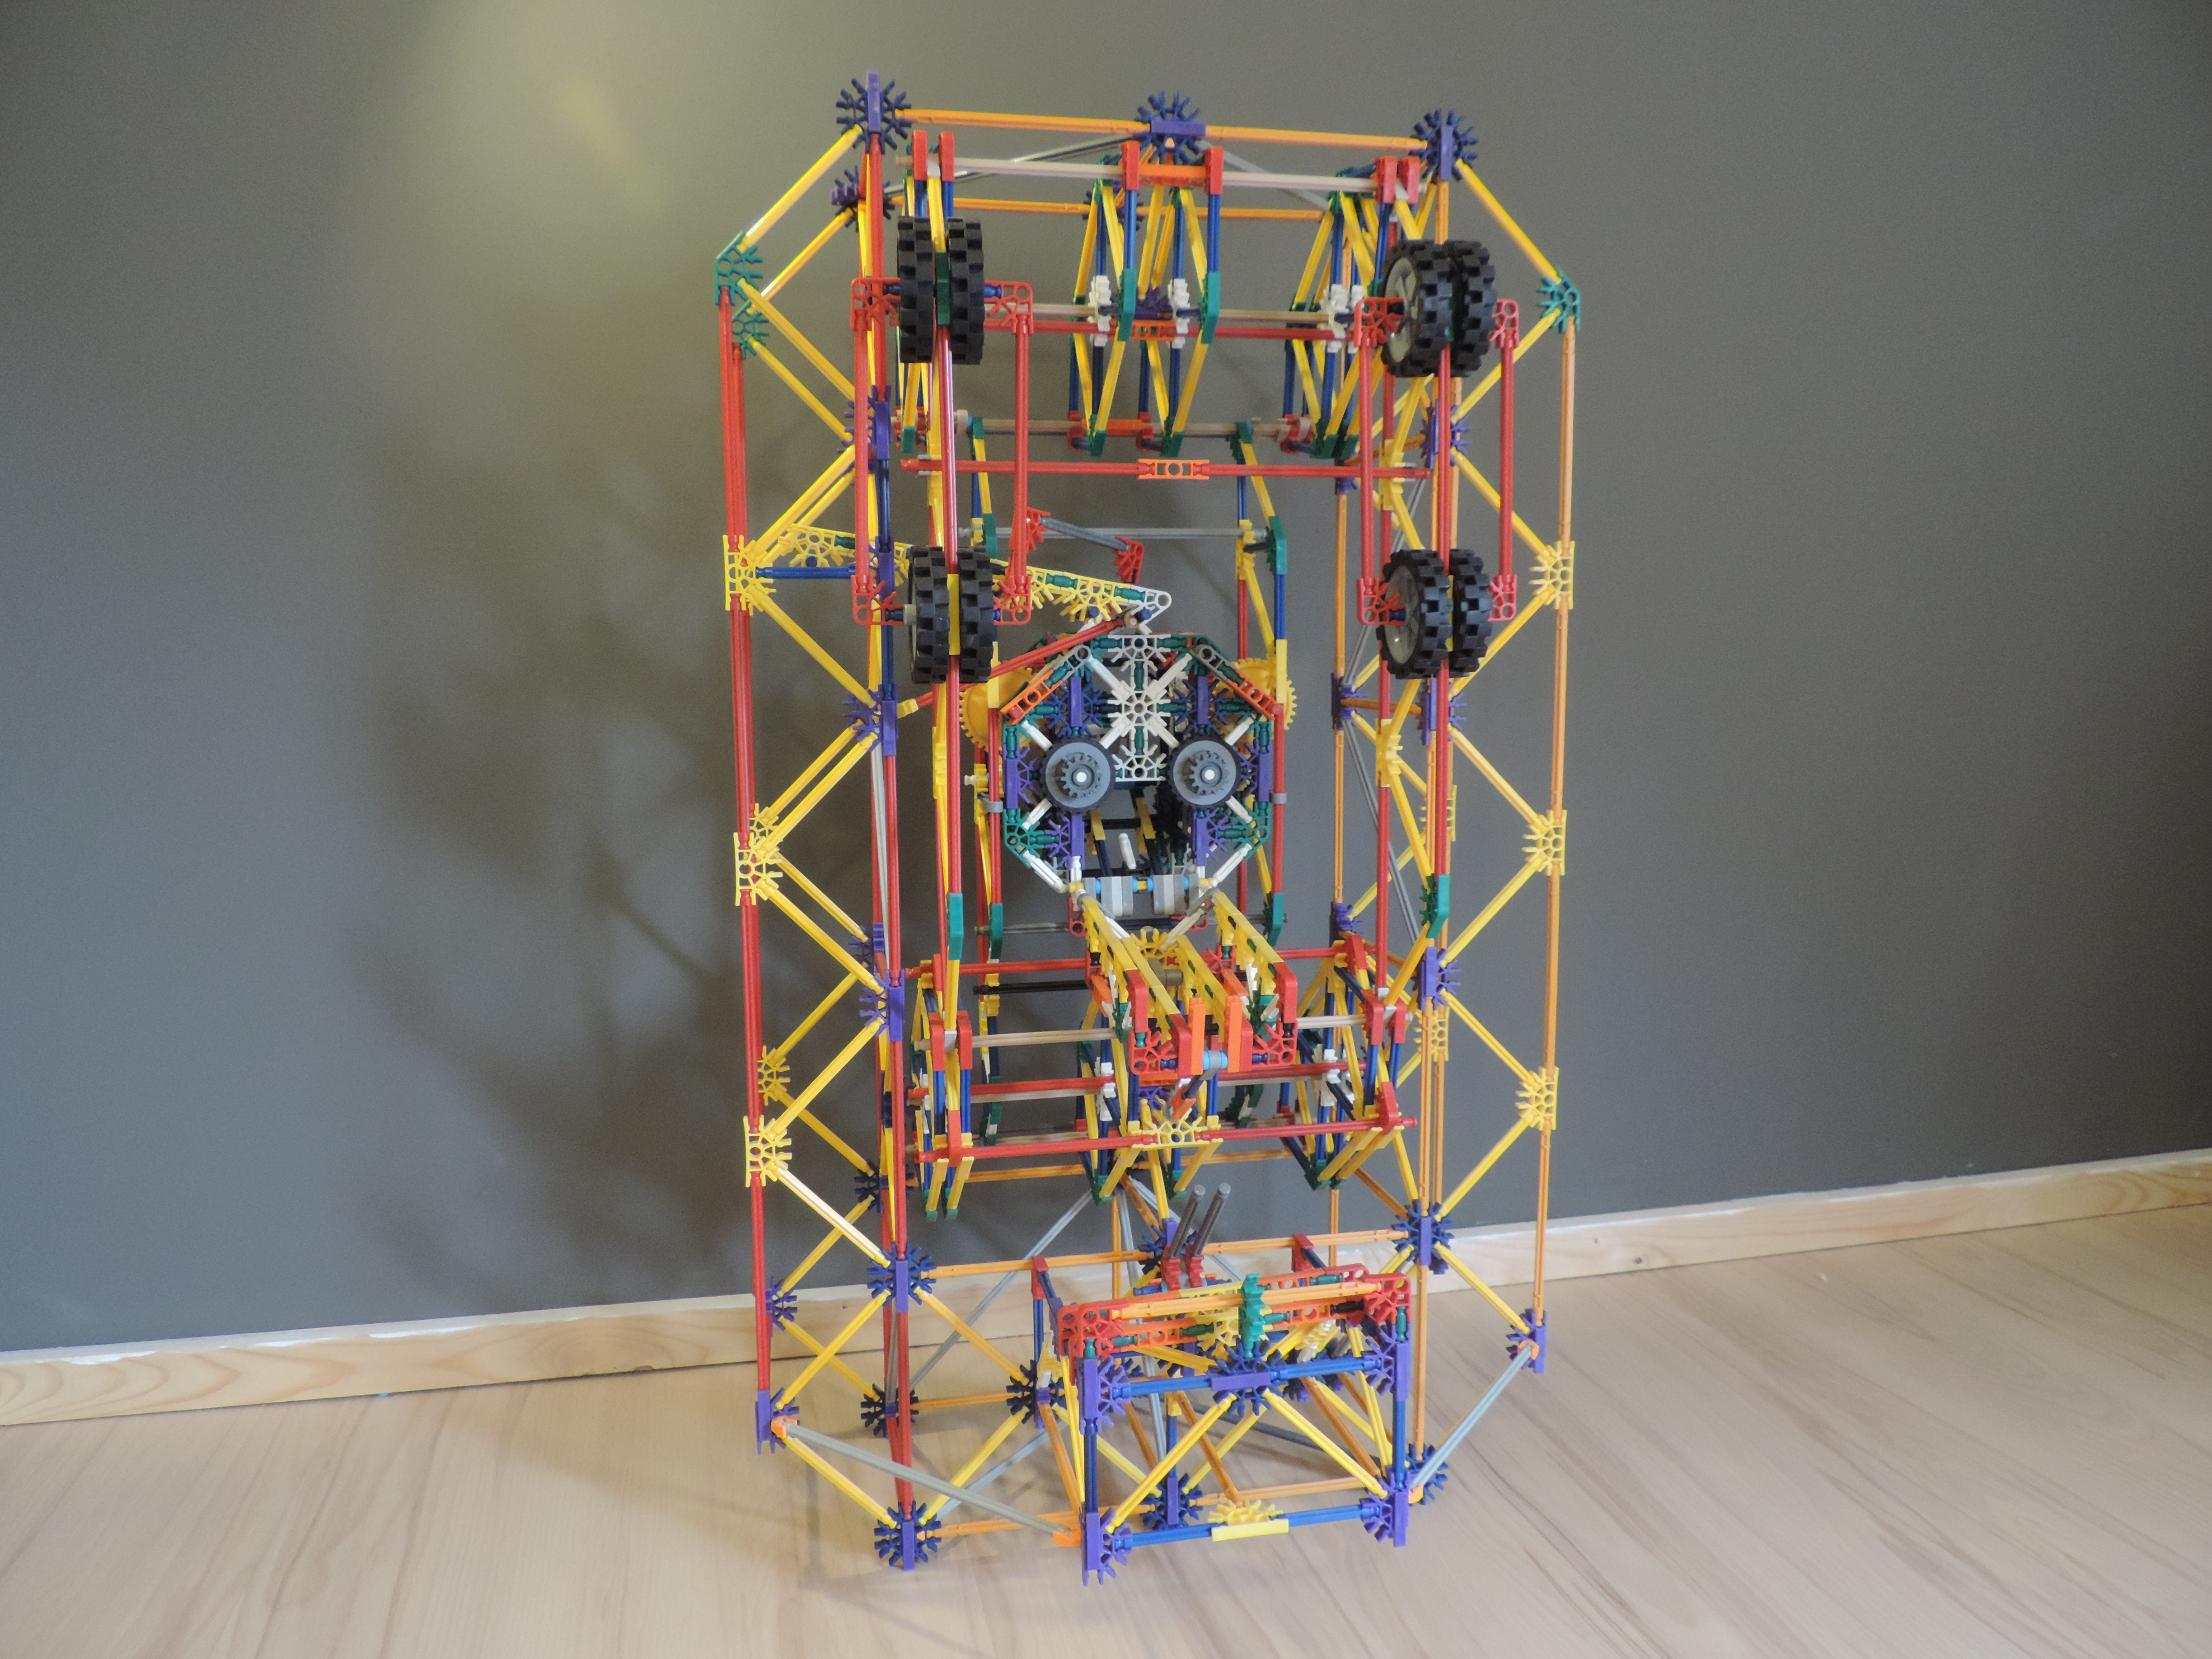 Picture of Knex Ball Mechine Element: Elevating Head Element